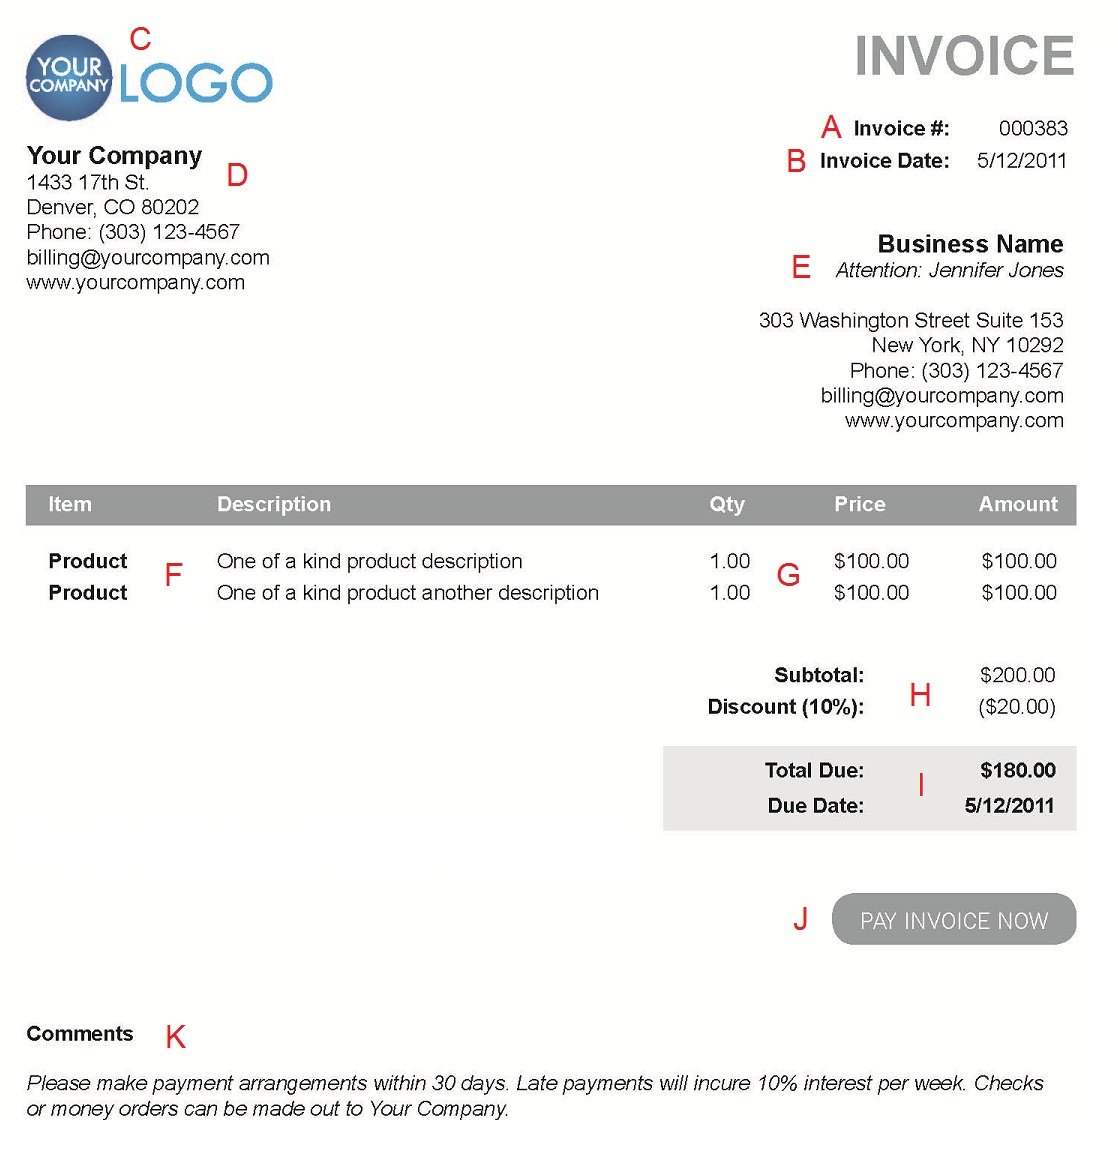 Angkajituus  Gorgeous The  Different Sections Of An Electronic Payment Invoice With Exciting A  With Alluring Printable Invoice Template Also Fake Invoice In Addition General Contractor Invoice And Invoice Manager As Well As Golden Gate Bridge Toll Invoice Additionally Lexis Power Invoice From Paysimplecom With Angkajituus  Exciting The  Different Sections Of An Electronic Payment Invoice With Alluring A  And Gorgeous Printable Invoice Template Also Fake Invoice In Addition General Contractor Invoice From Paysimplecom